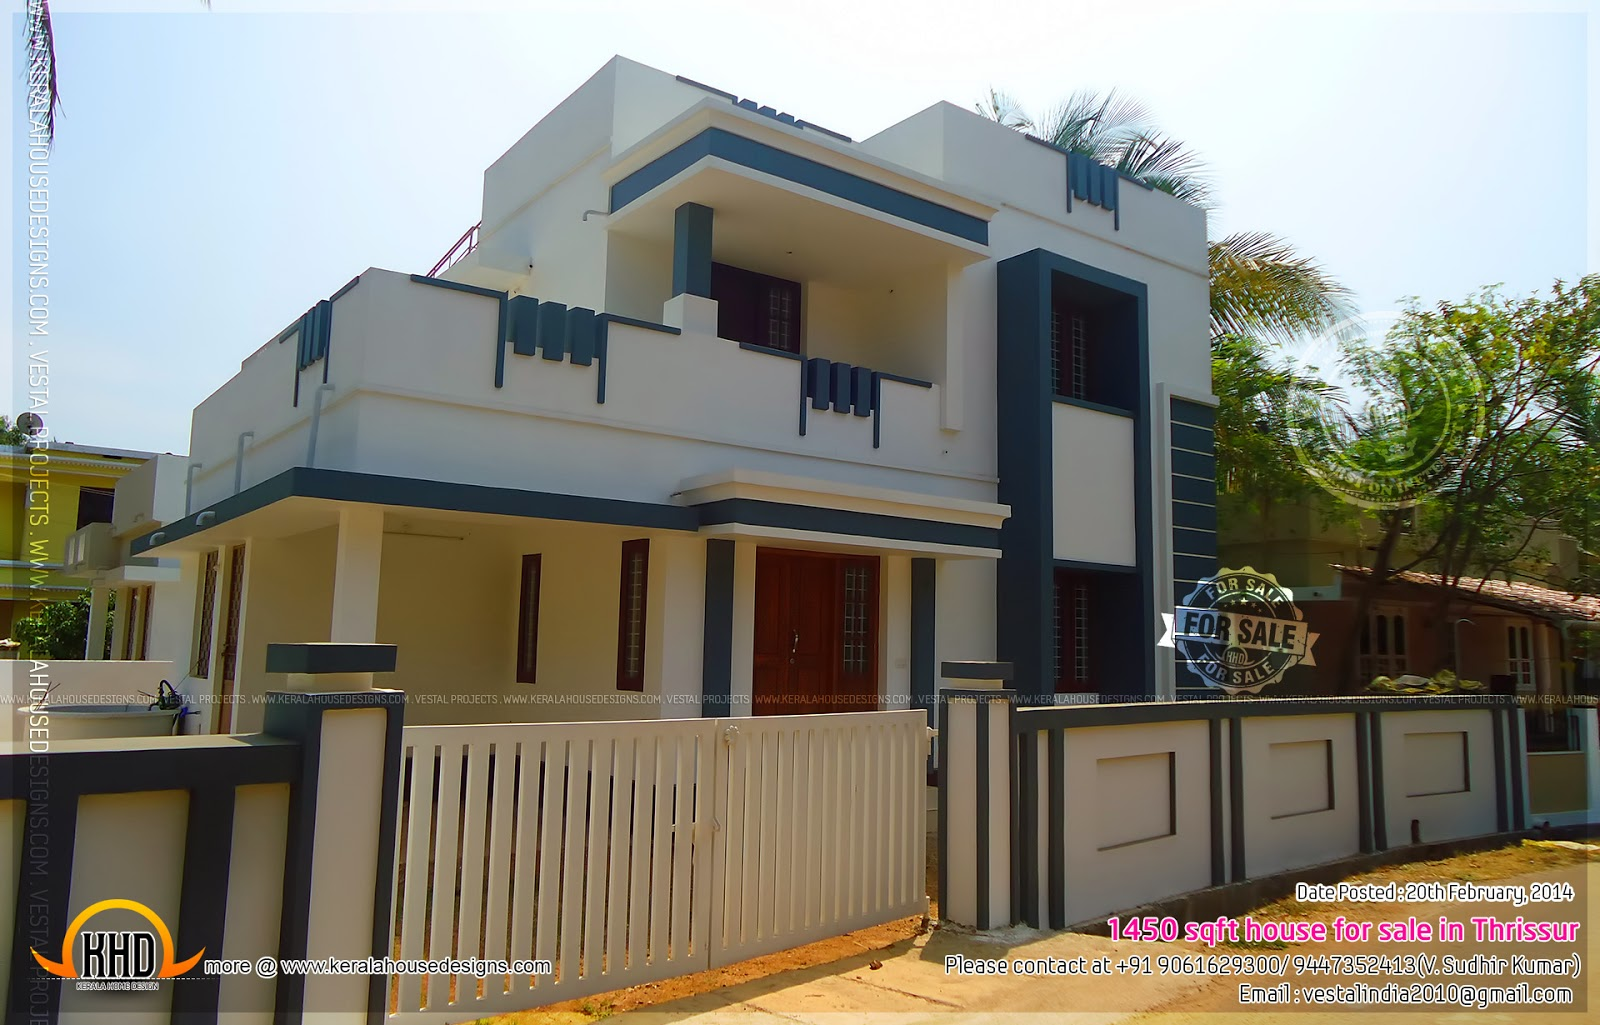 Front Elevation Designs With Balcony : Sqft house for sale in thrissur kerala home design